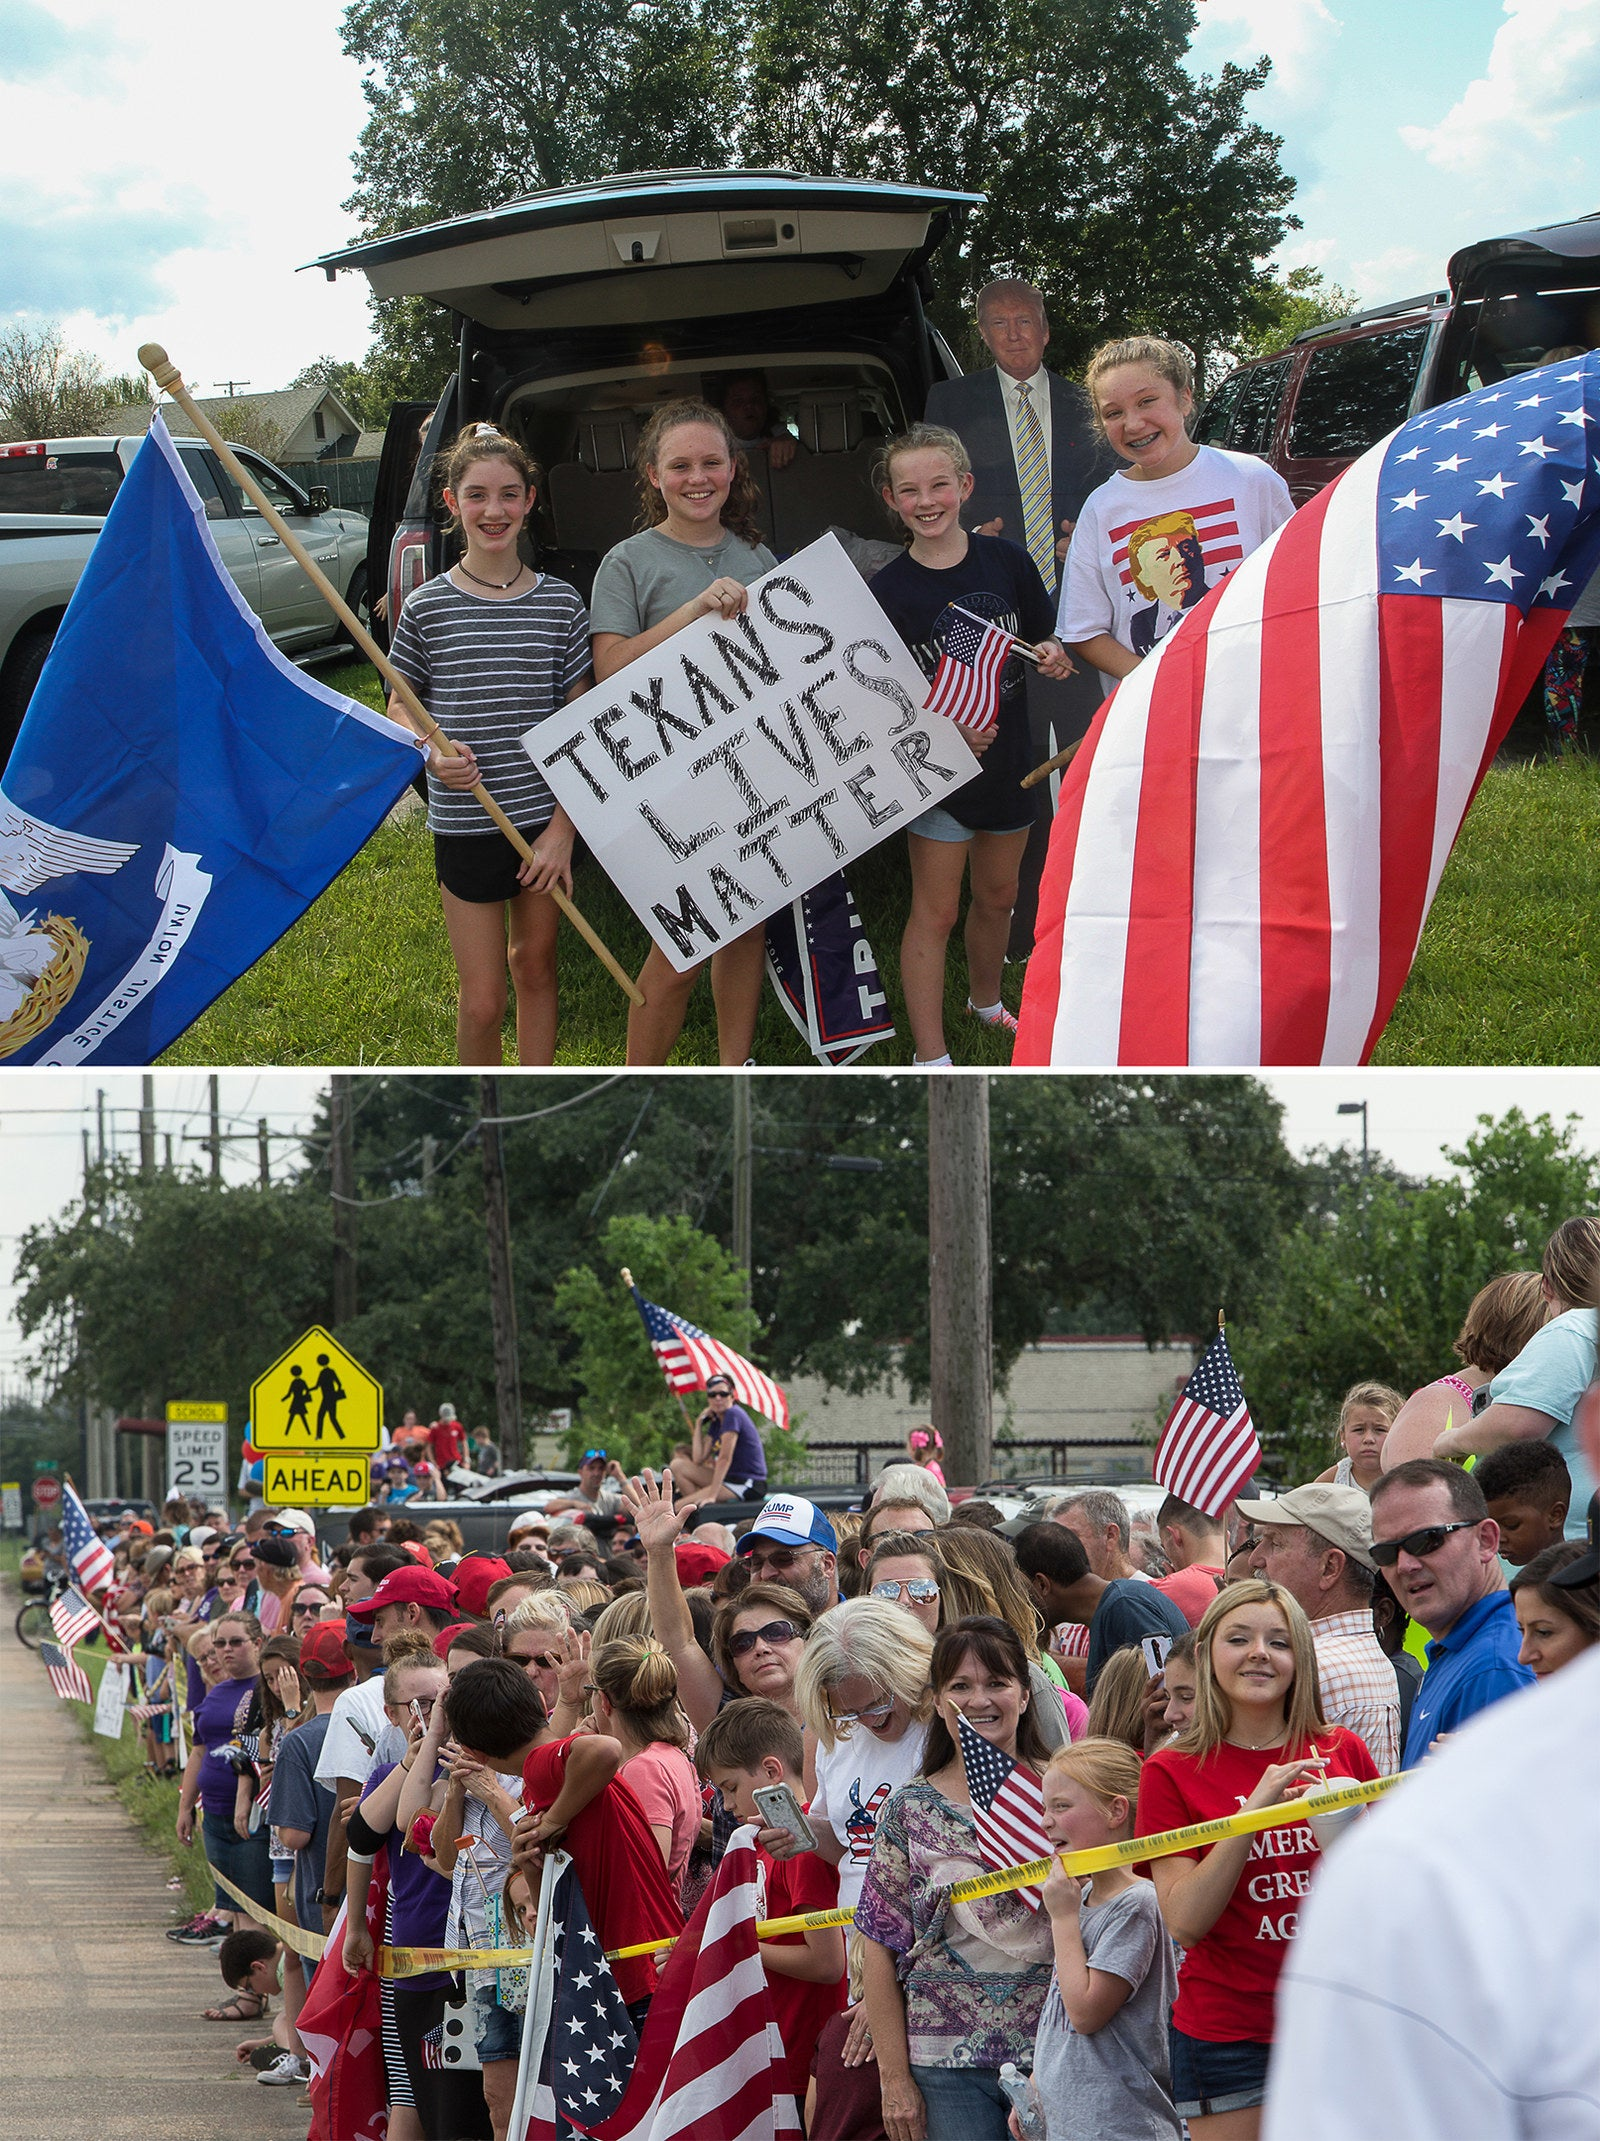 Supporters of US President Donald Trump excitedly await his arrival in Lake Charles.